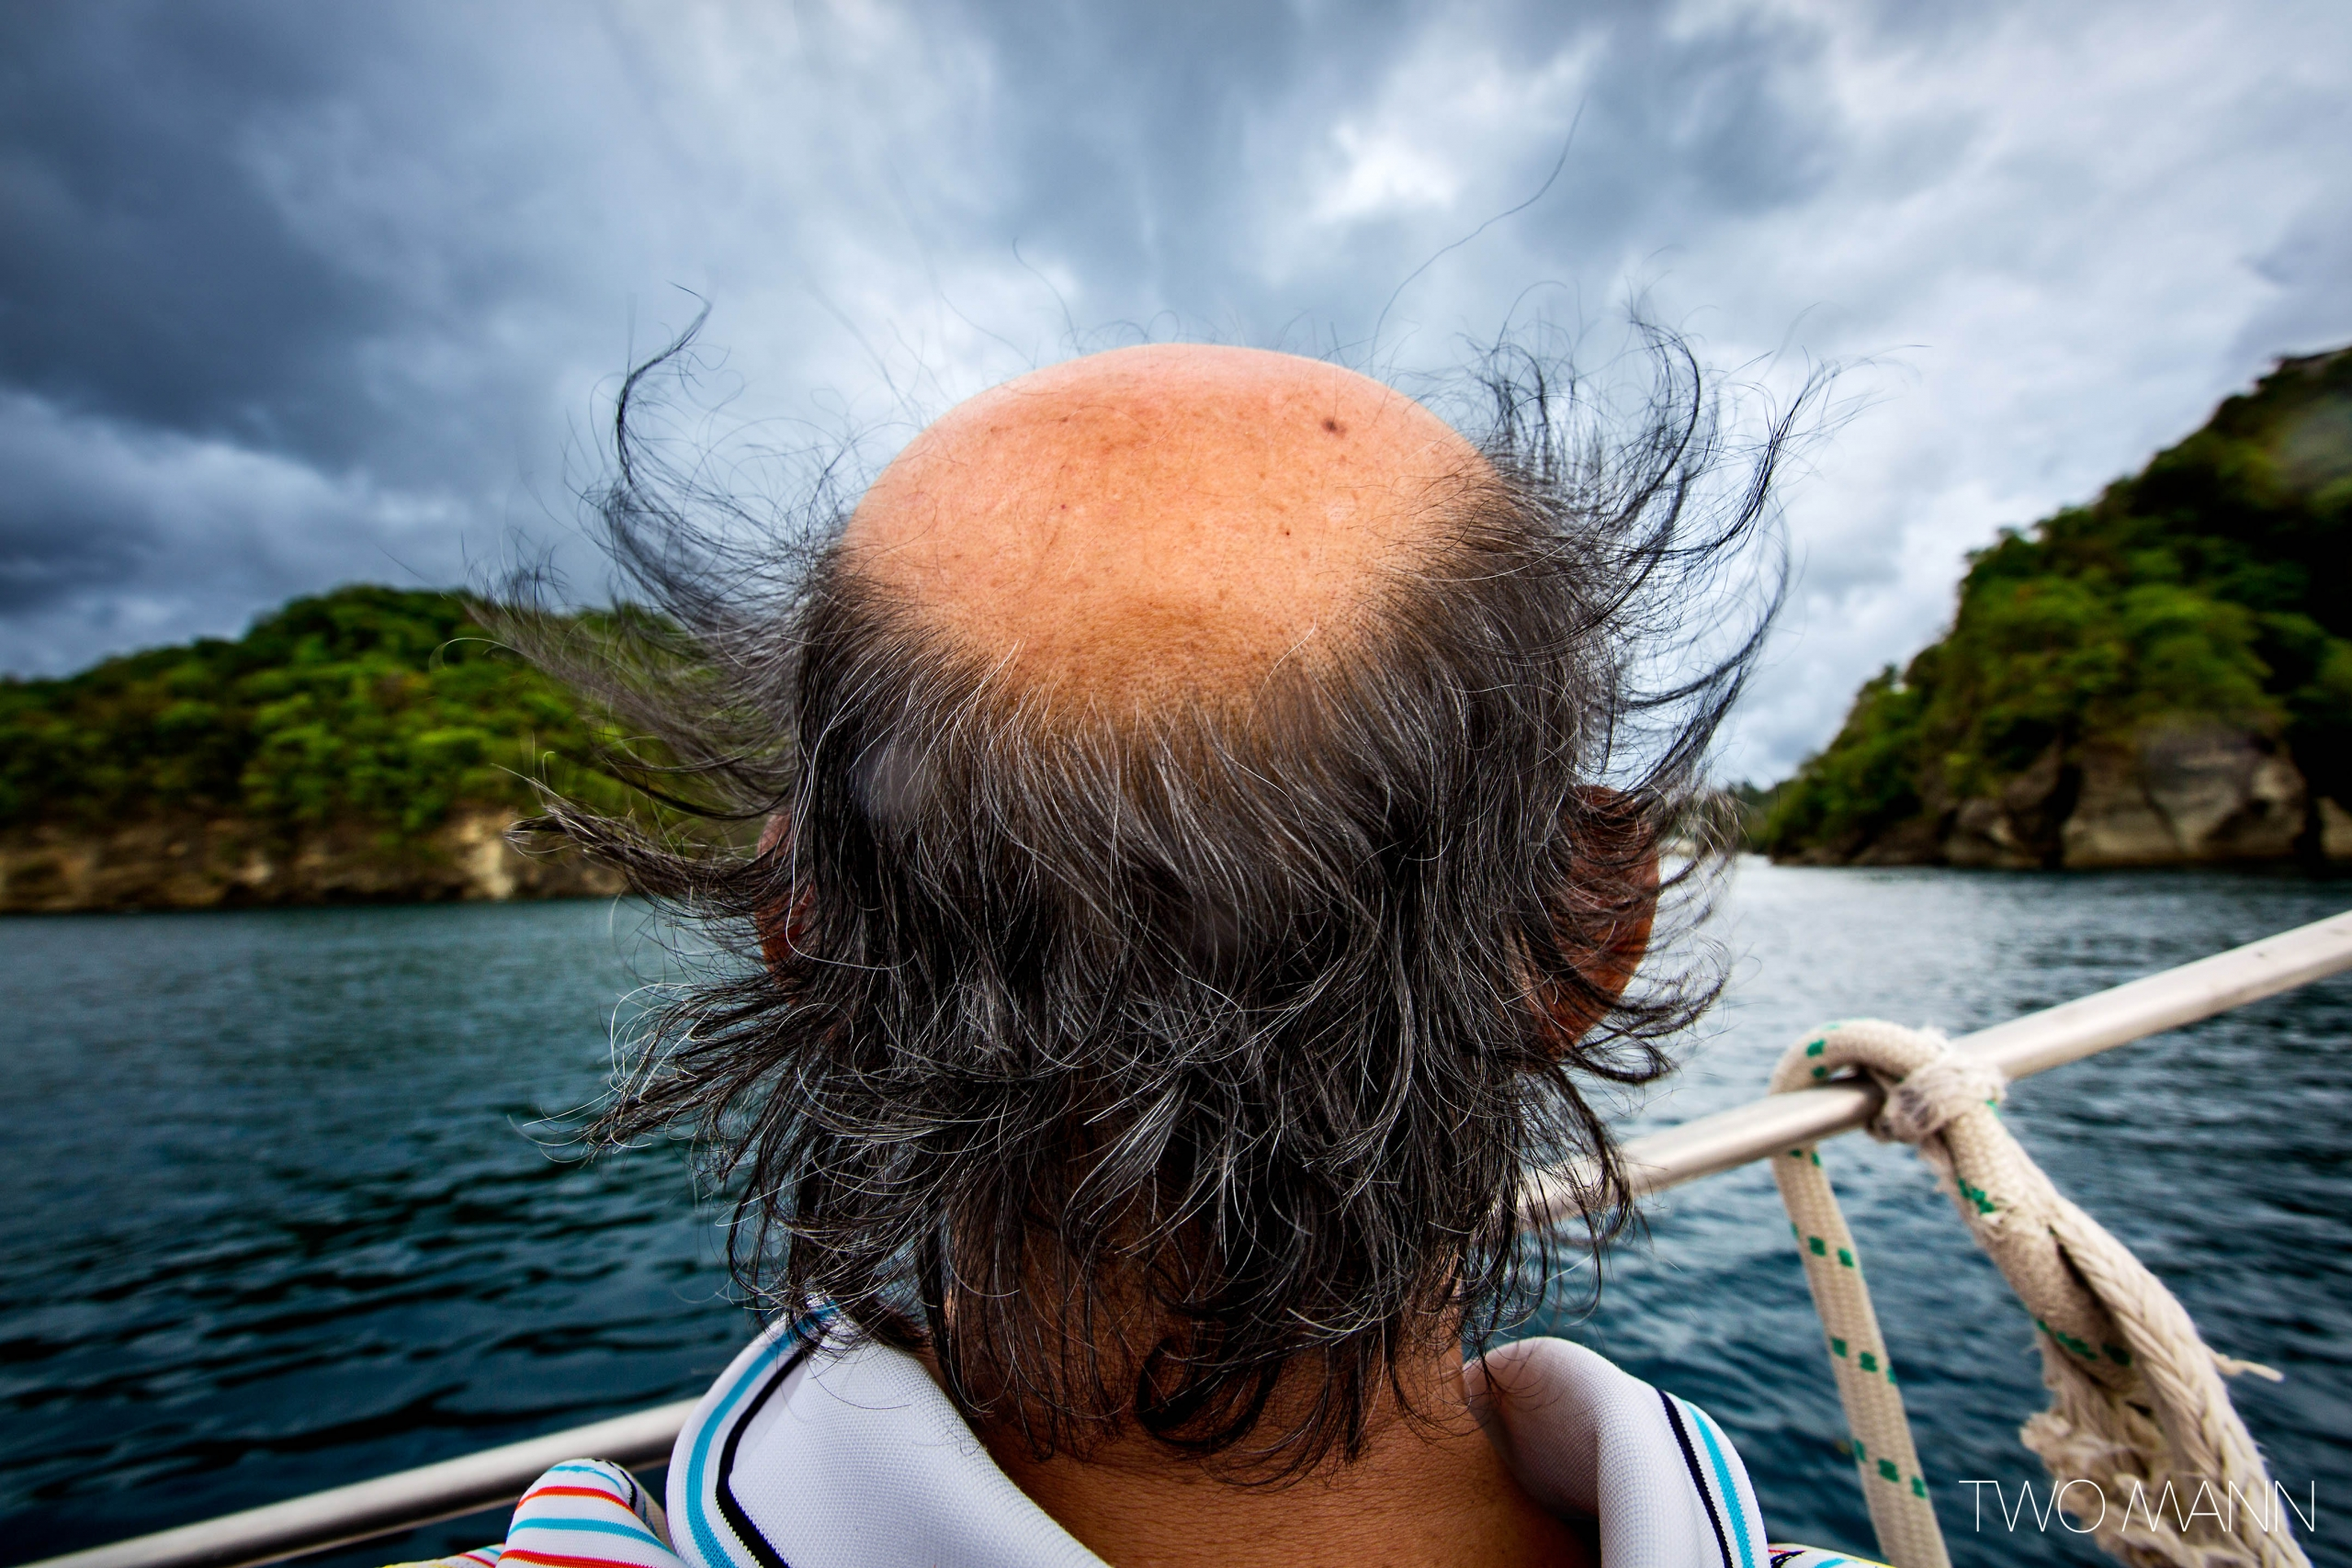 a balding-on-top-of-head man looking at the sea